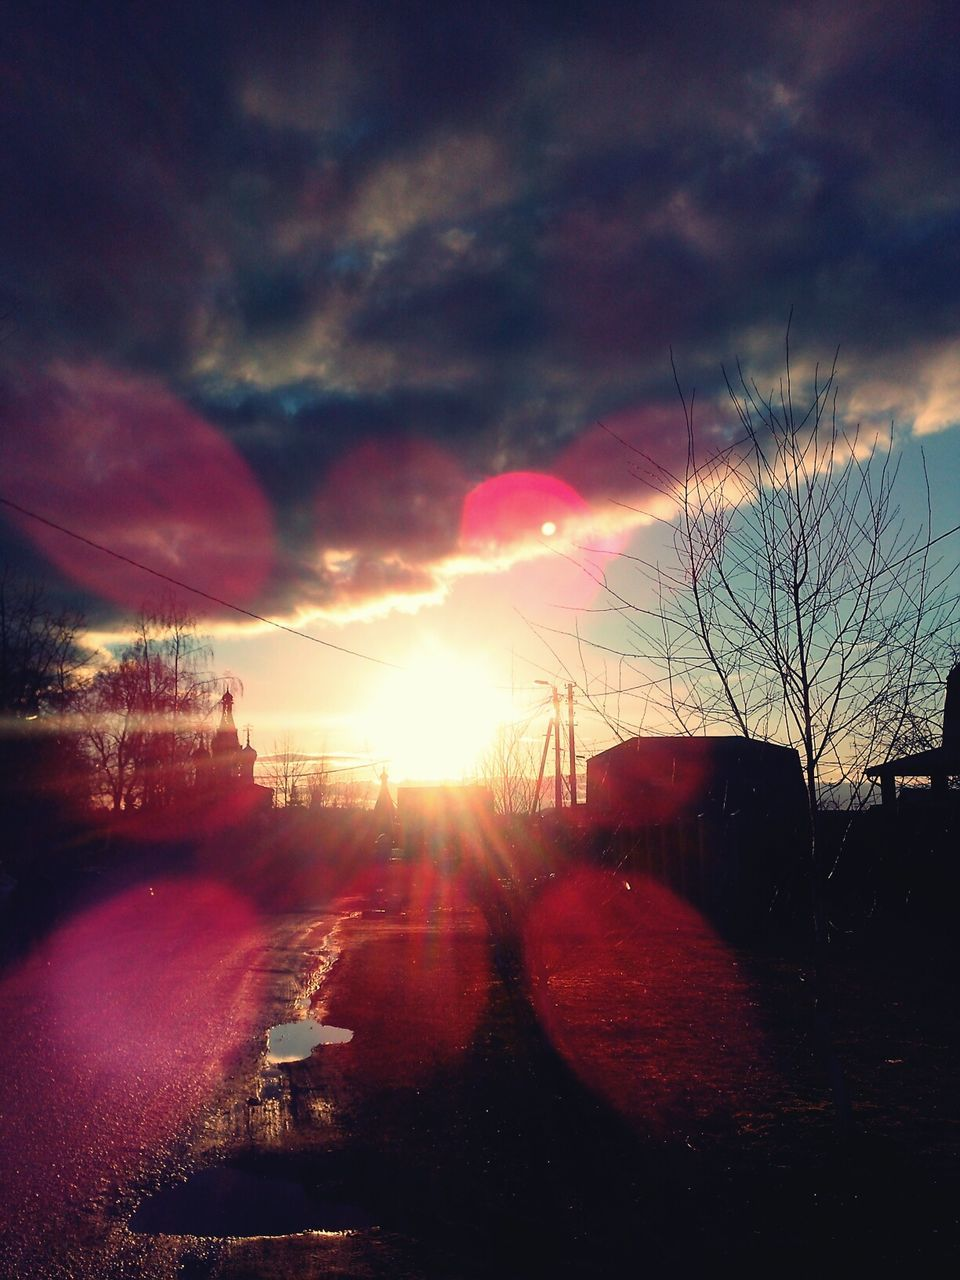 sunset, sky, sun, no people, silhouette, road, cloud - sky, bare tree, tree, outdoors, nature, beauty in nature, city, day